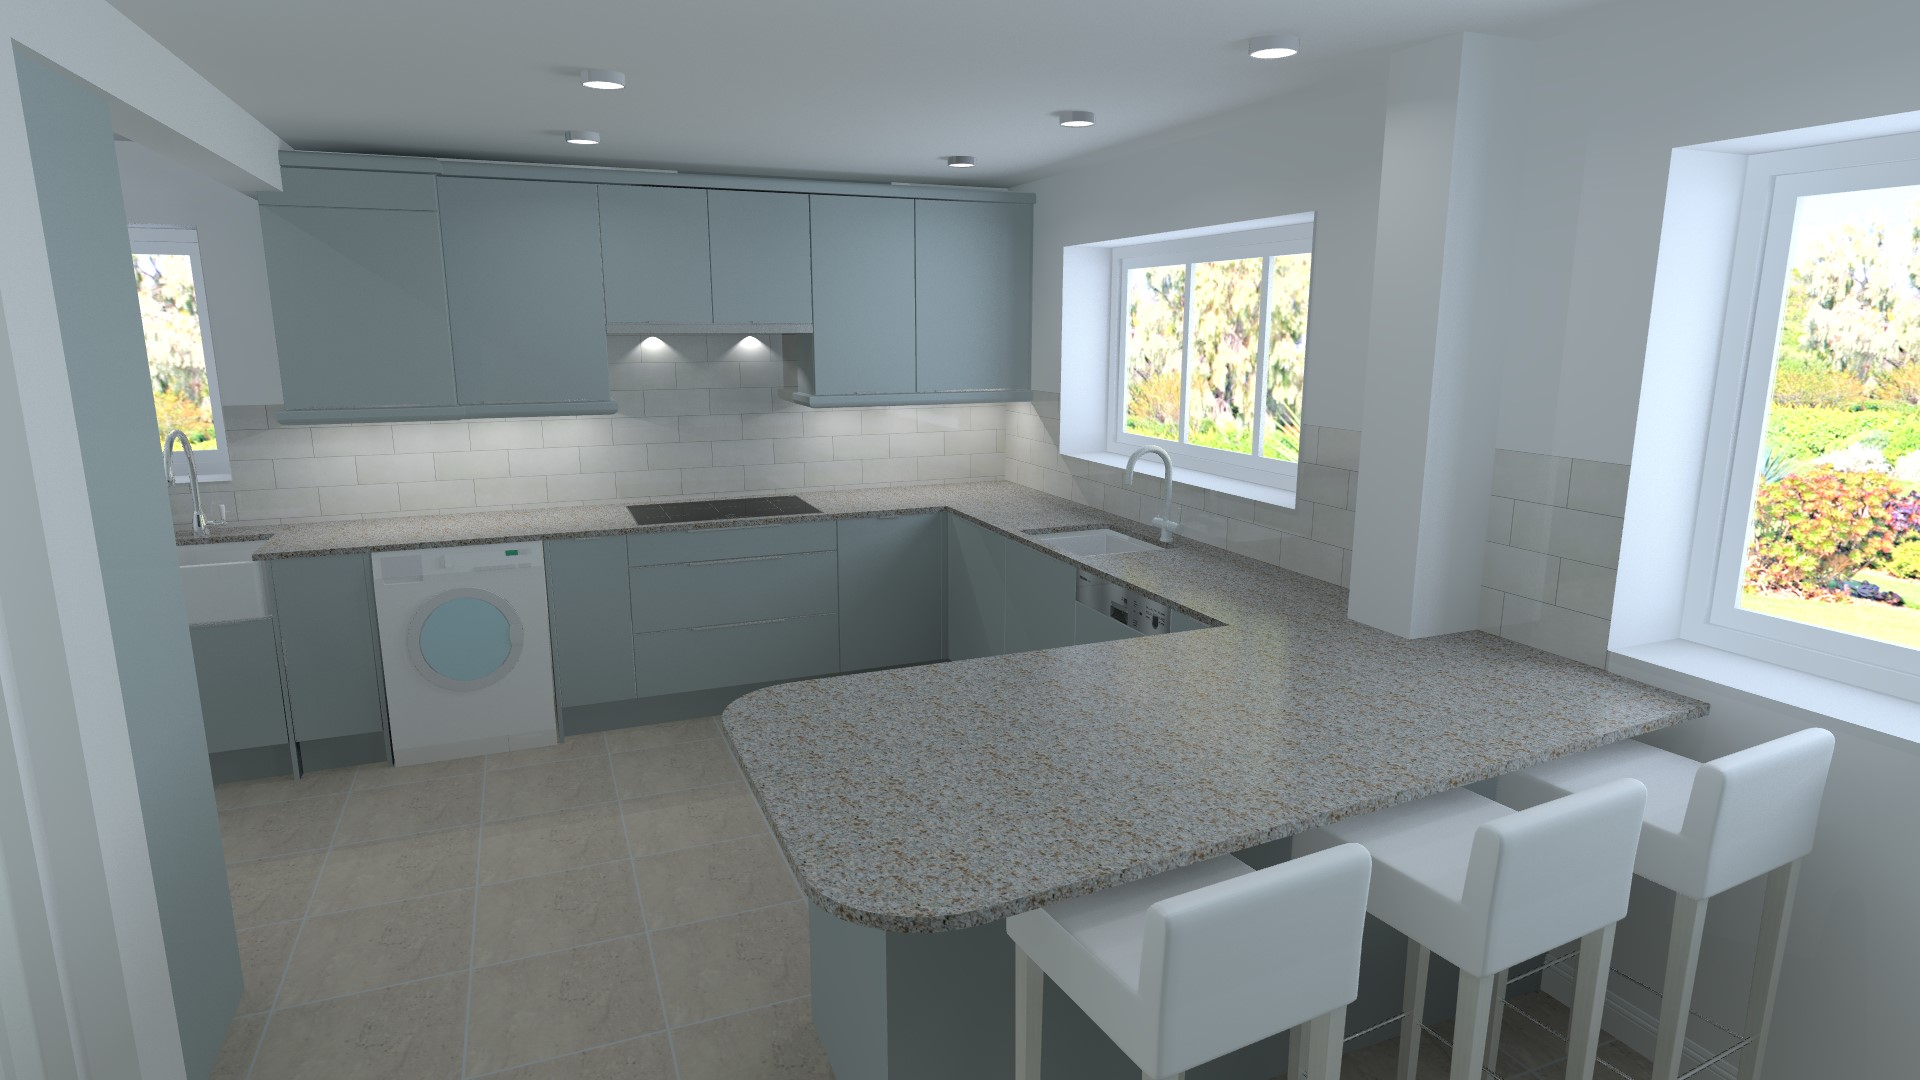 Mr and Mrs Hill Final Revised Kitchen Layout View 5.jpg